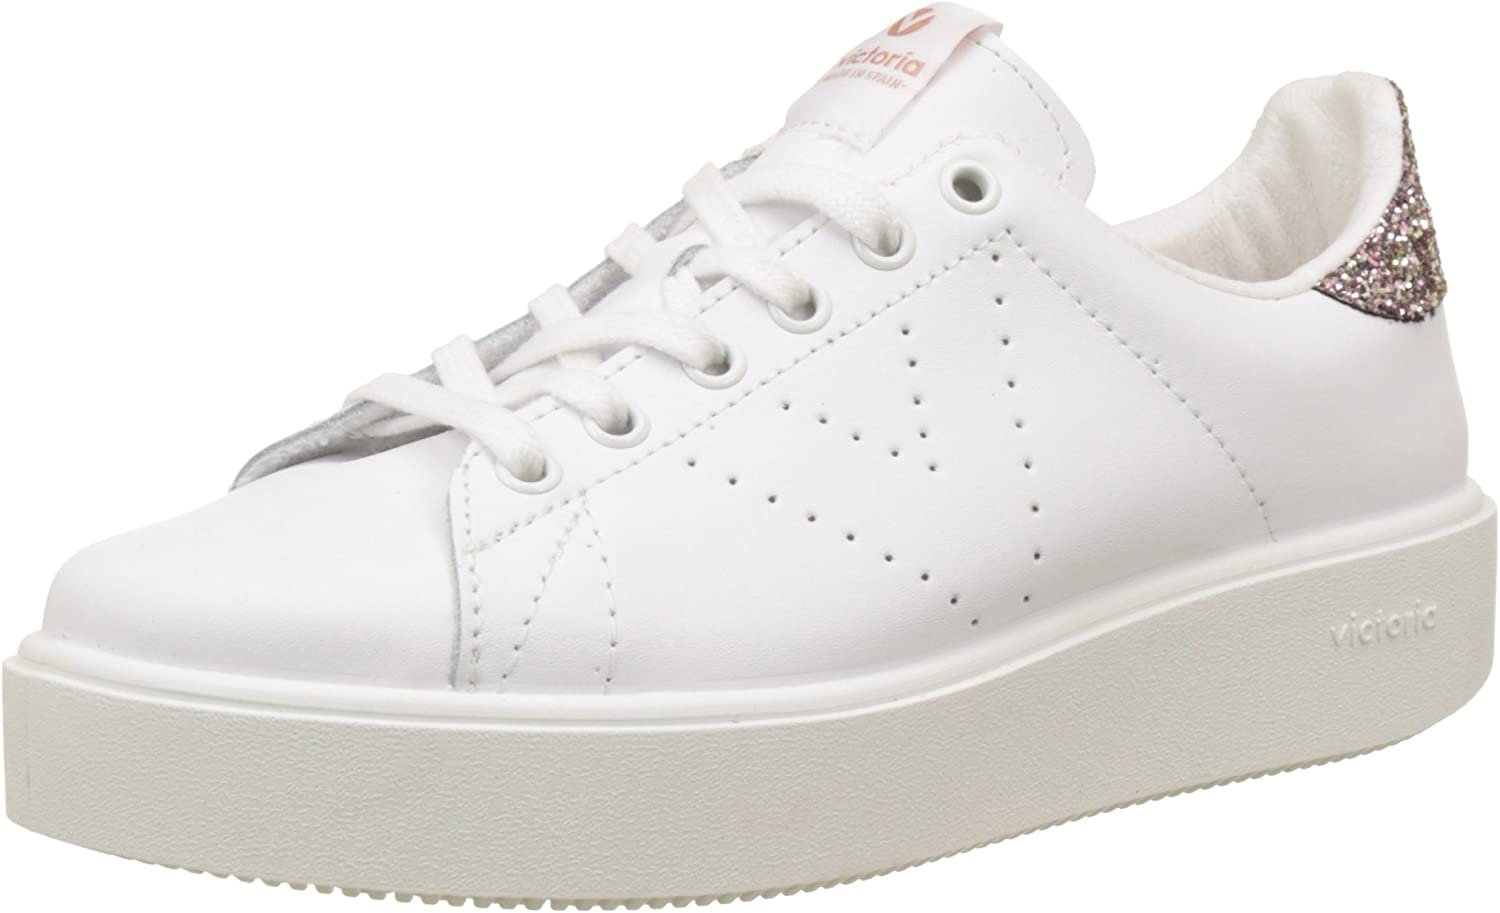 Victoria Deportivo Piel, Unisex Adults' Low-Top Trainers